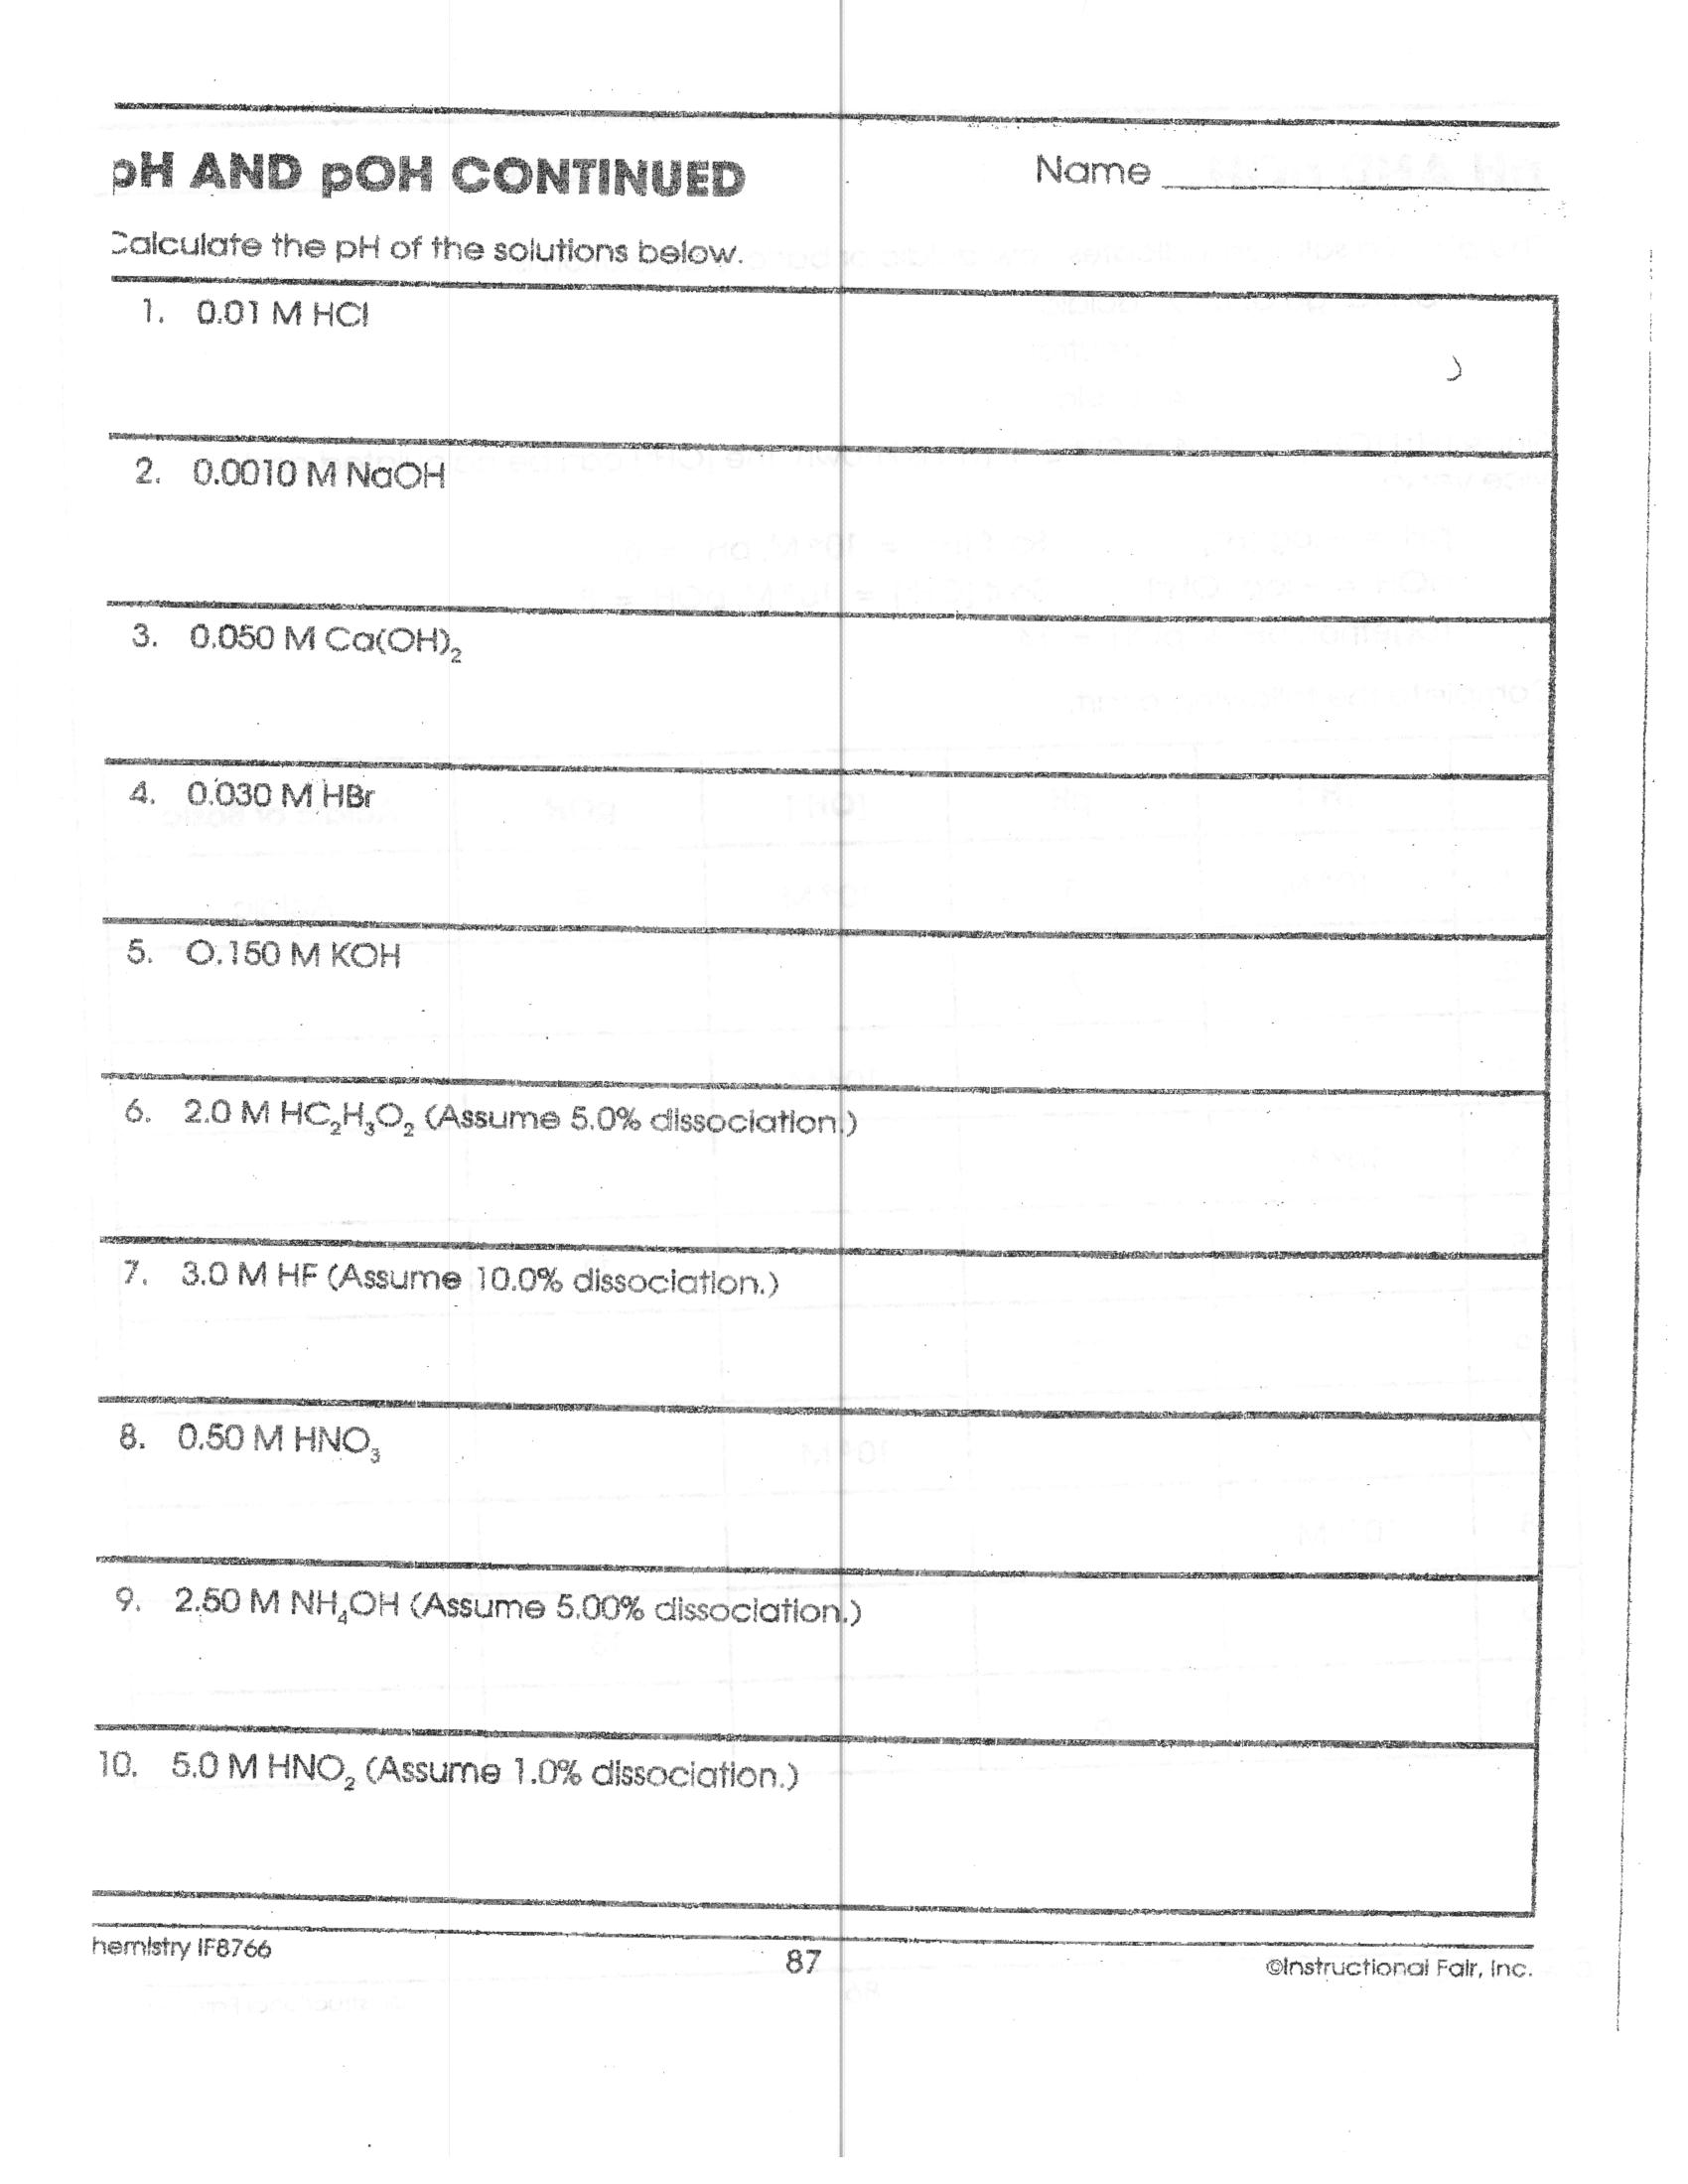 Printables Ph Poh Russian Answer Work Sheet Joomsimple – Acid and Bases Worksheet Answer Key